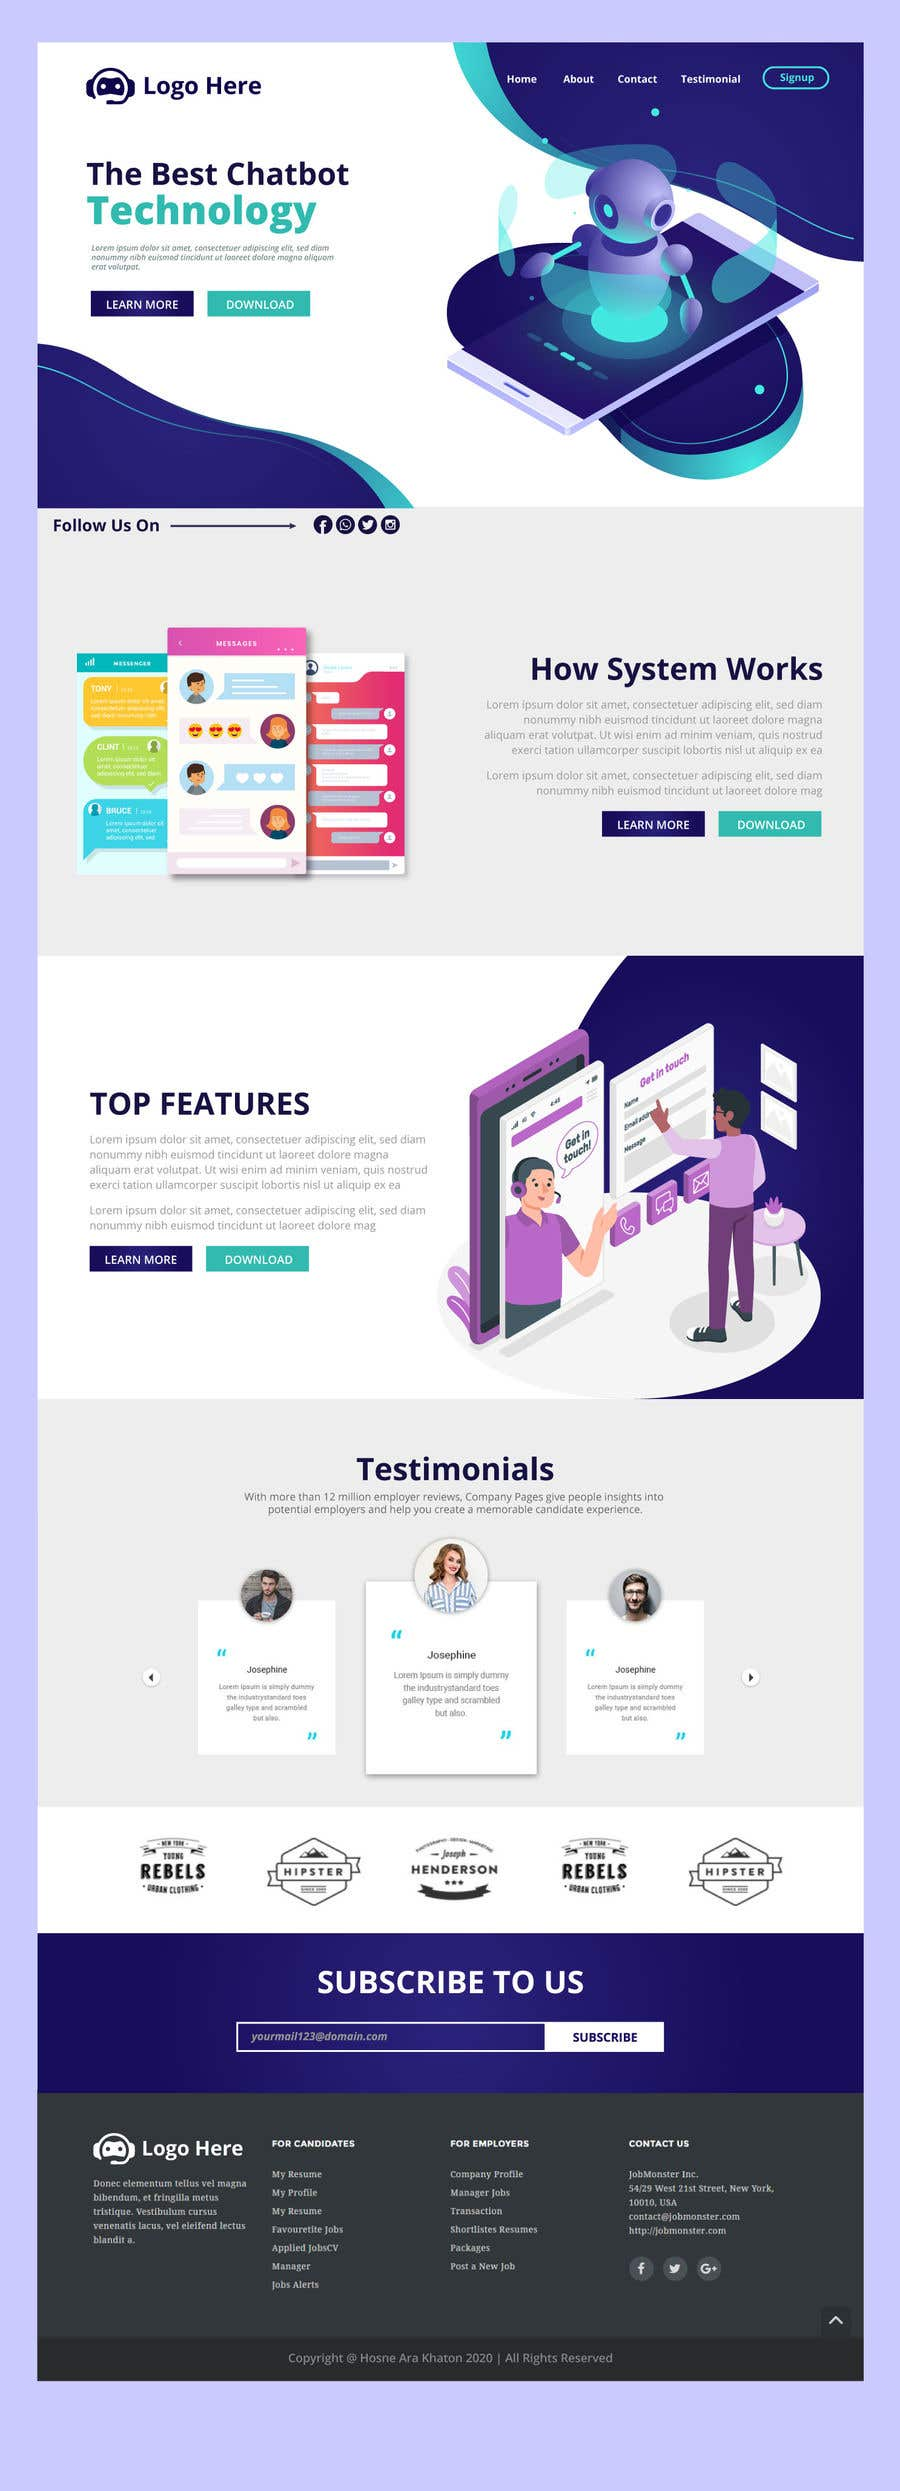 Bài tham dự cuộc thi #                                        45                                      cho                                         I need a Landing Page Website for Small Business Stores